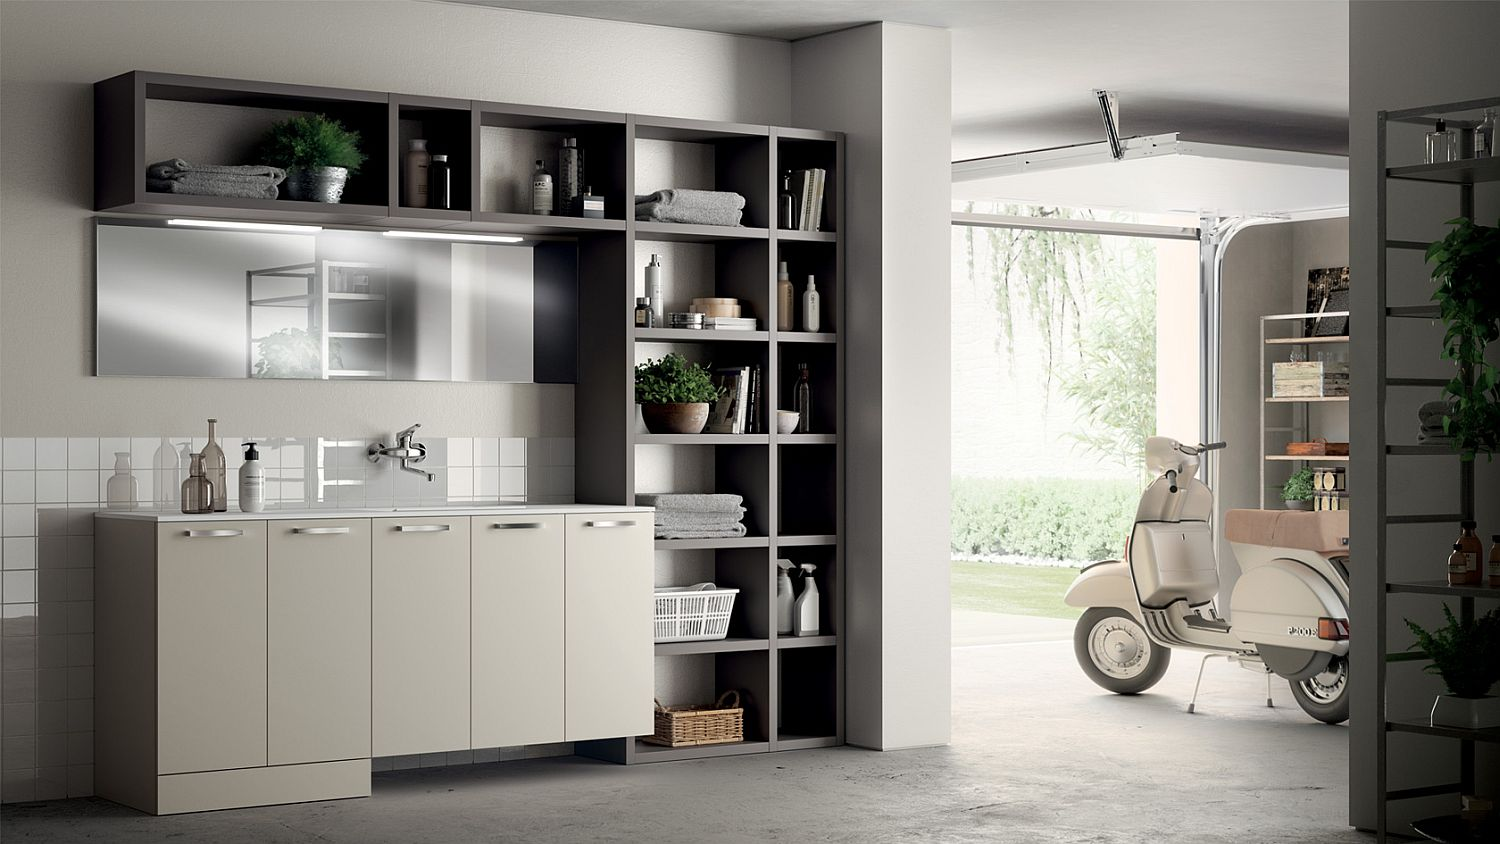 Laundry Space designed by Idelfonso Colombo for Scavolini